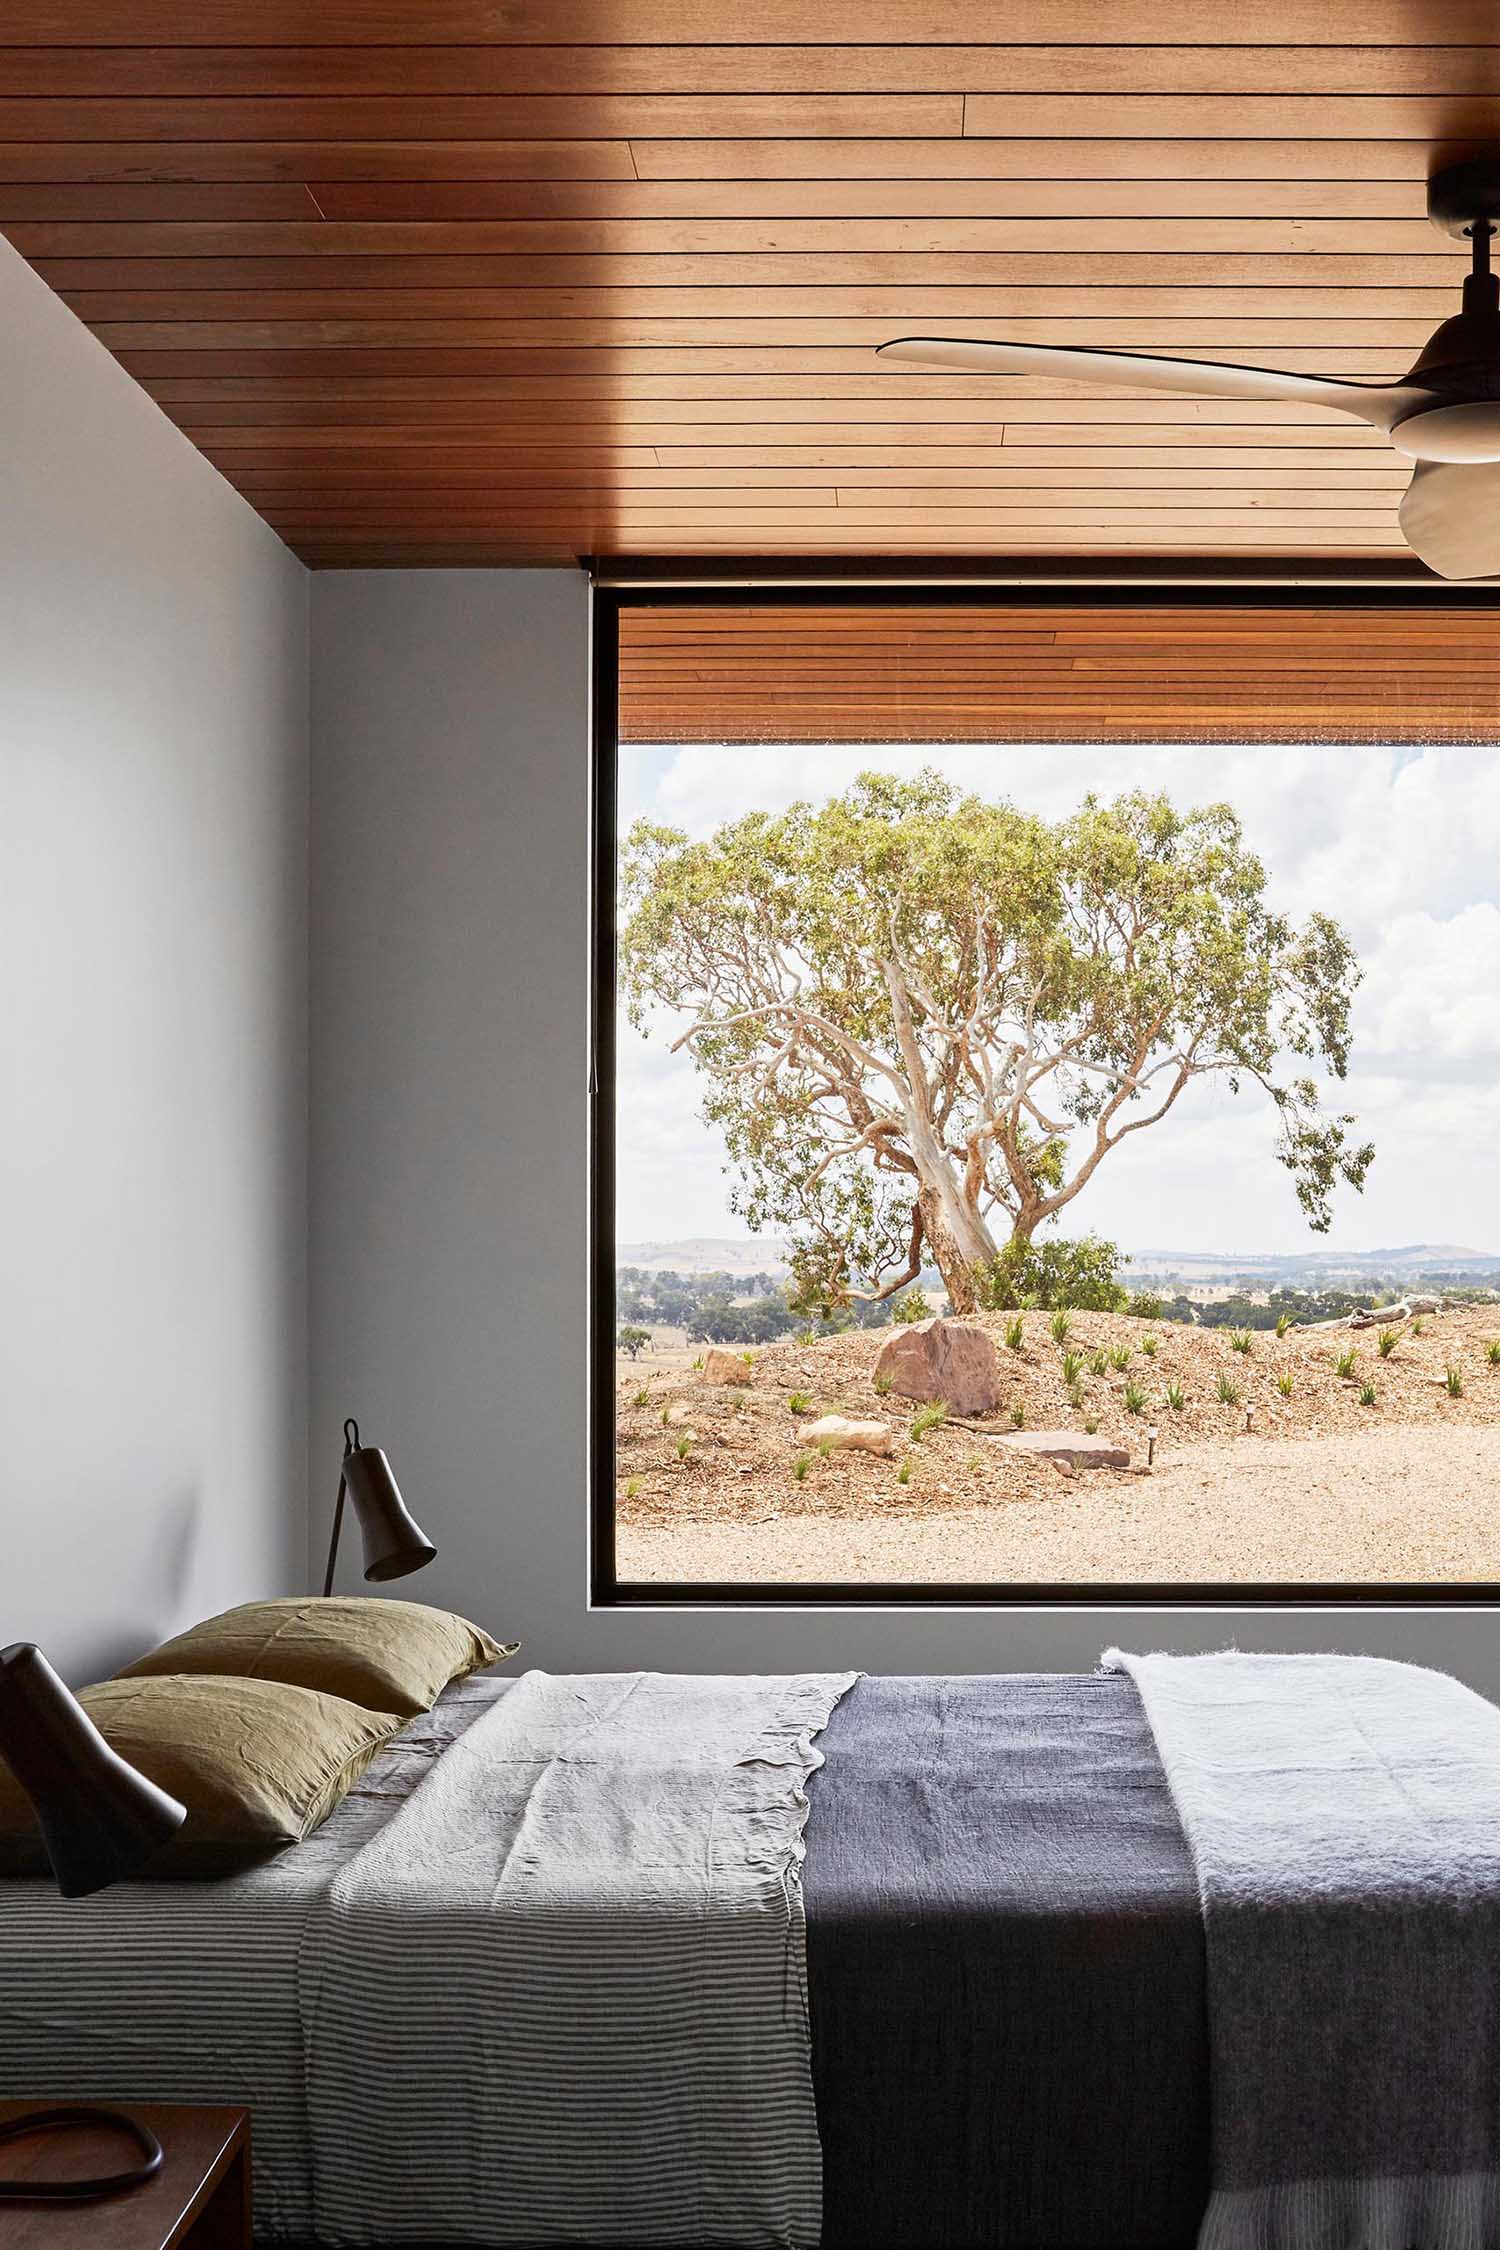 In this modern bedroom, a large picture window with a black frame perfectly showcases the rural landscape.